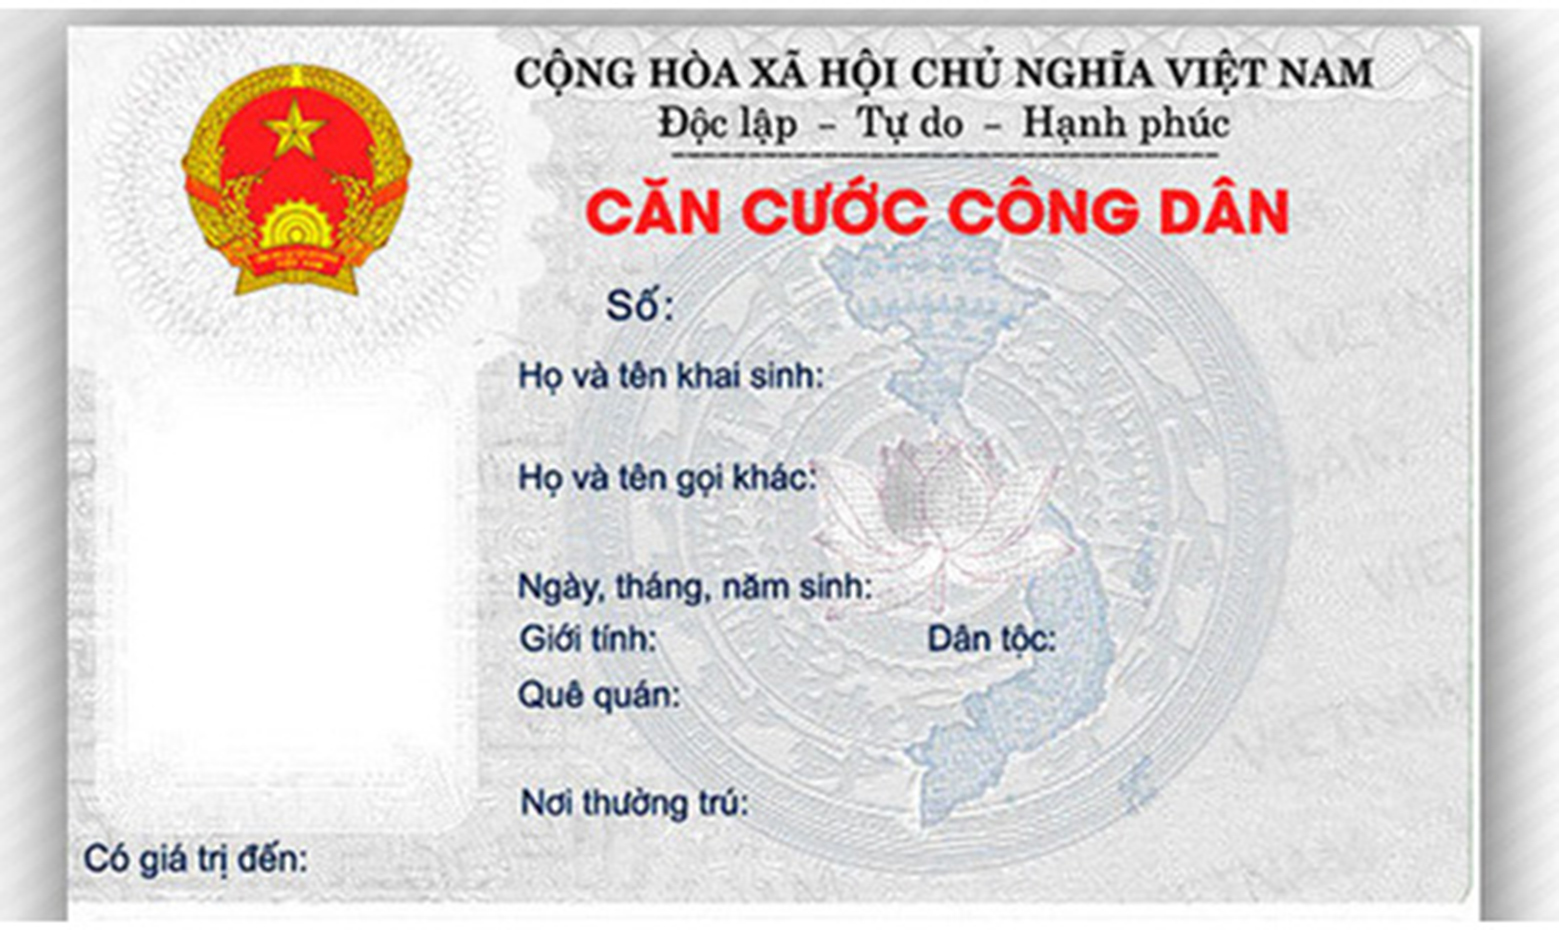 quy-dinh-ve-the-can-cuoc-cong-dan-y-nghia-12-so-tren-the-cccd